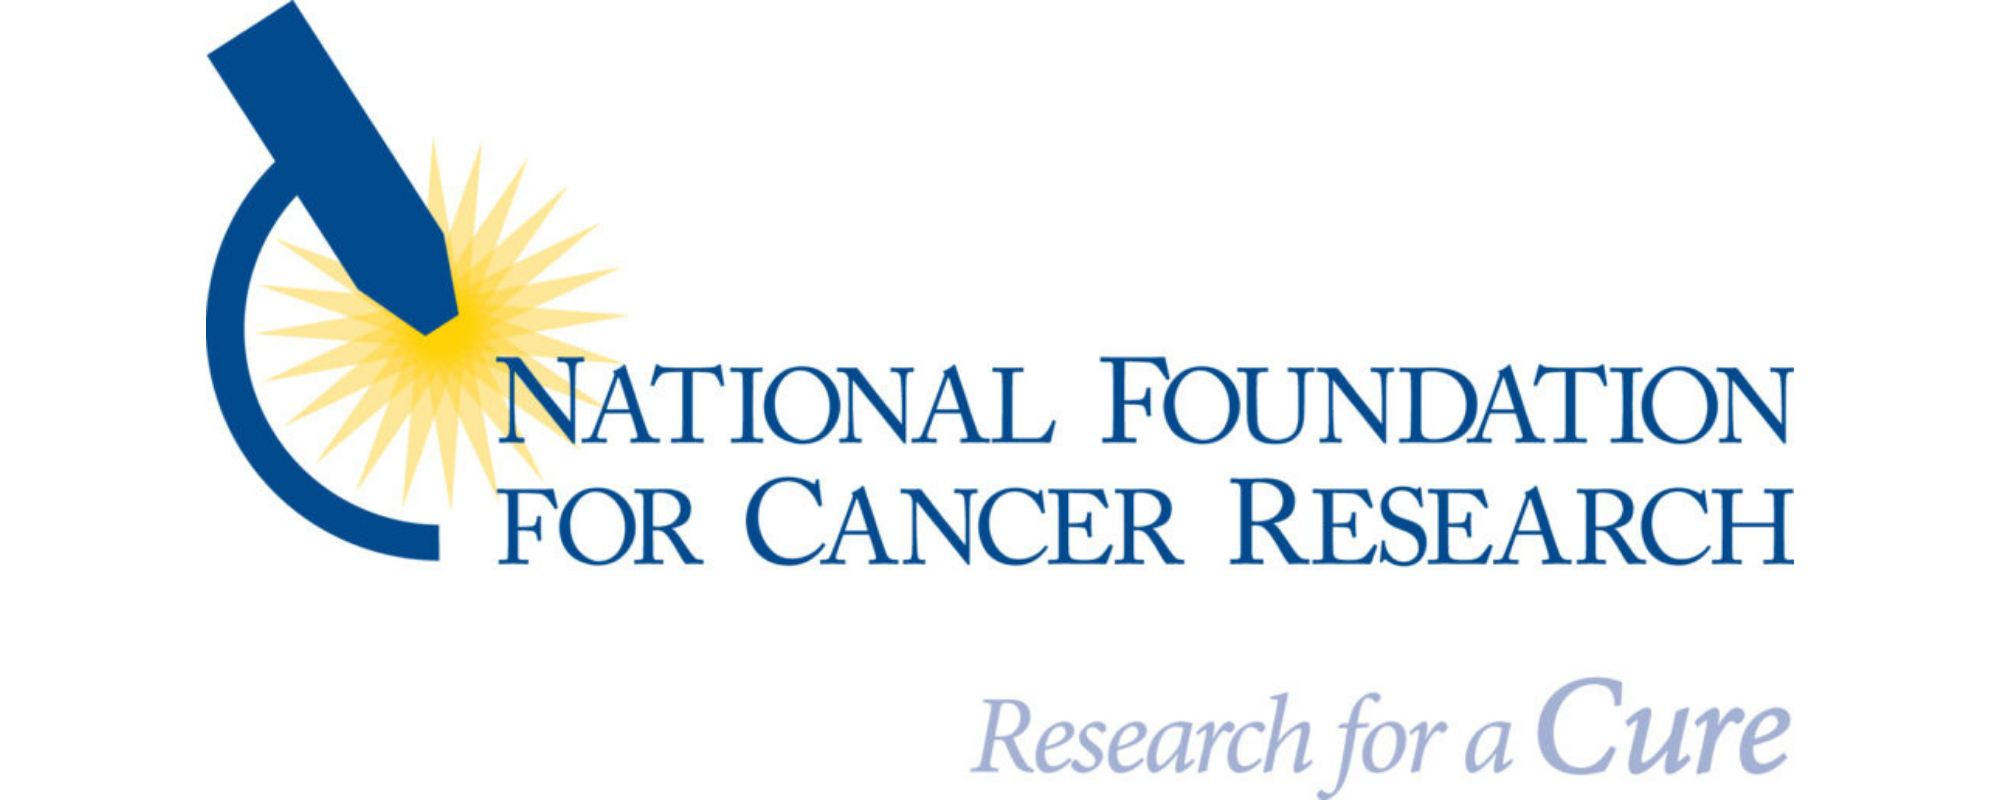 National Foundation For Cancer Research Resize